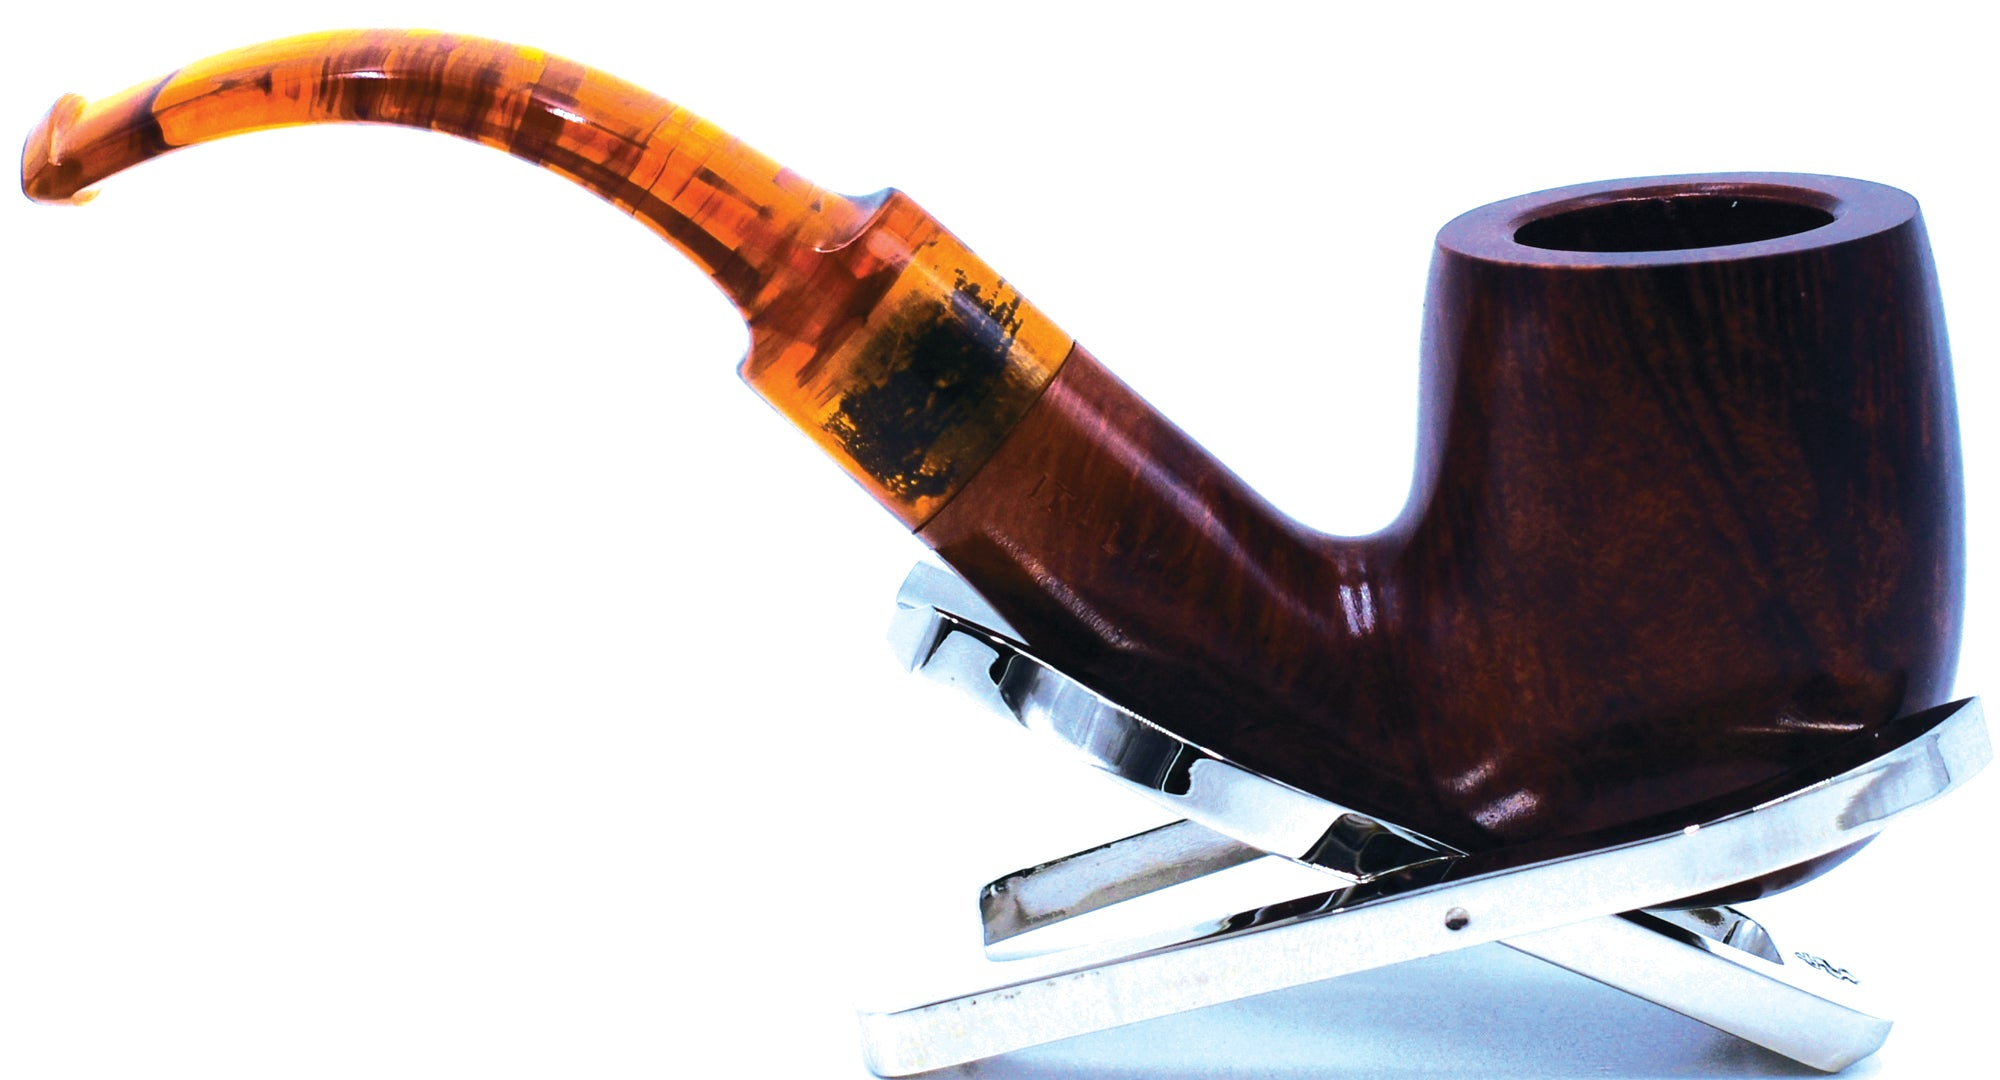 LEGENDEX® LASCALA* Plexiglass Mouthpiece 9 MM Filtered Briar Smoking Pipe Made In Italy 01-08-702